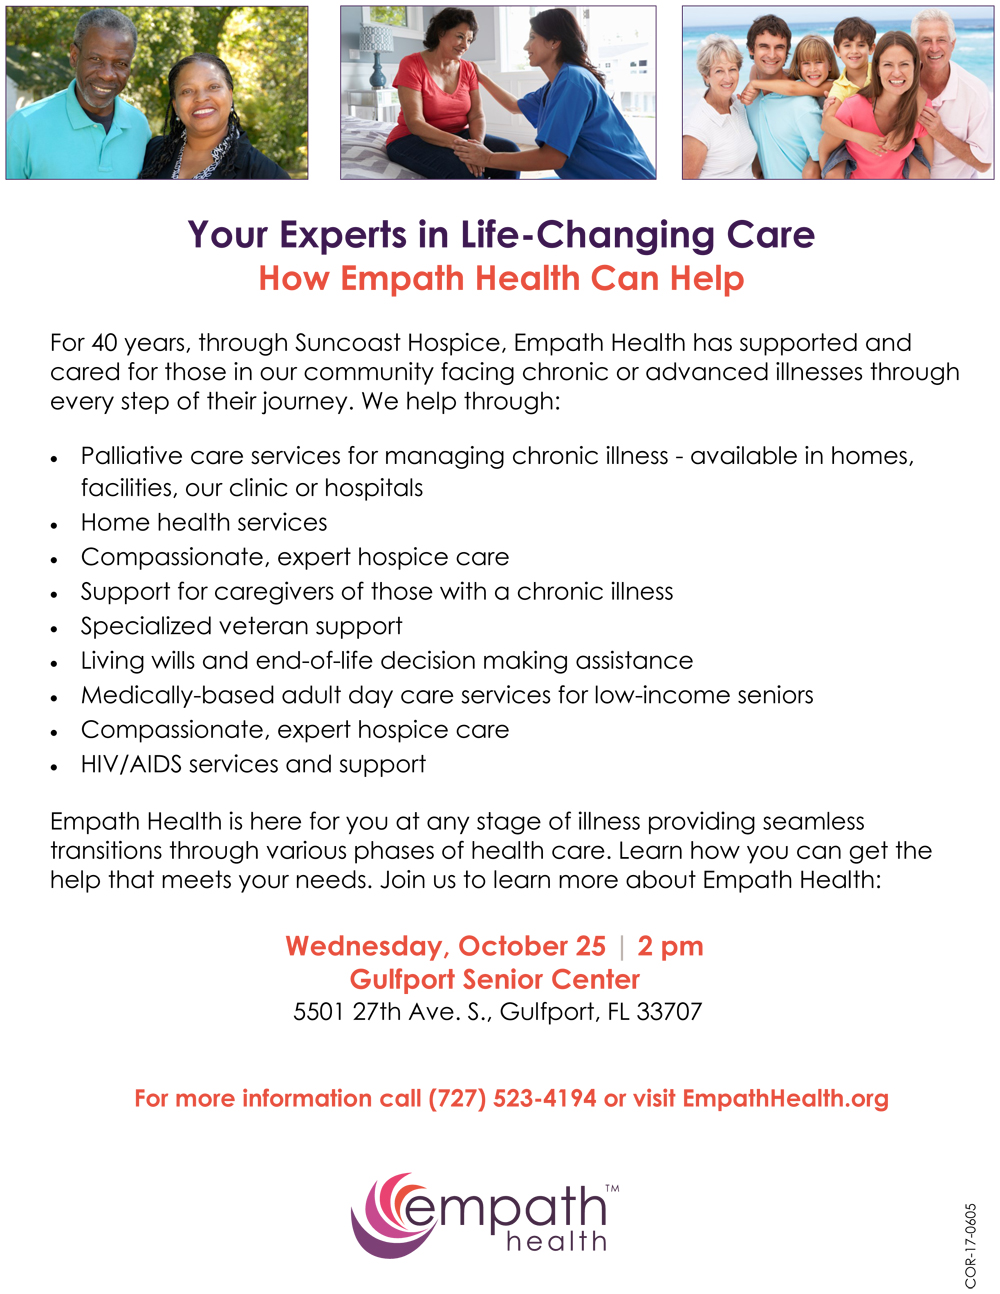 Empath Health Overview: Experts in Life-Changing Care @ Gulfport Senior Center